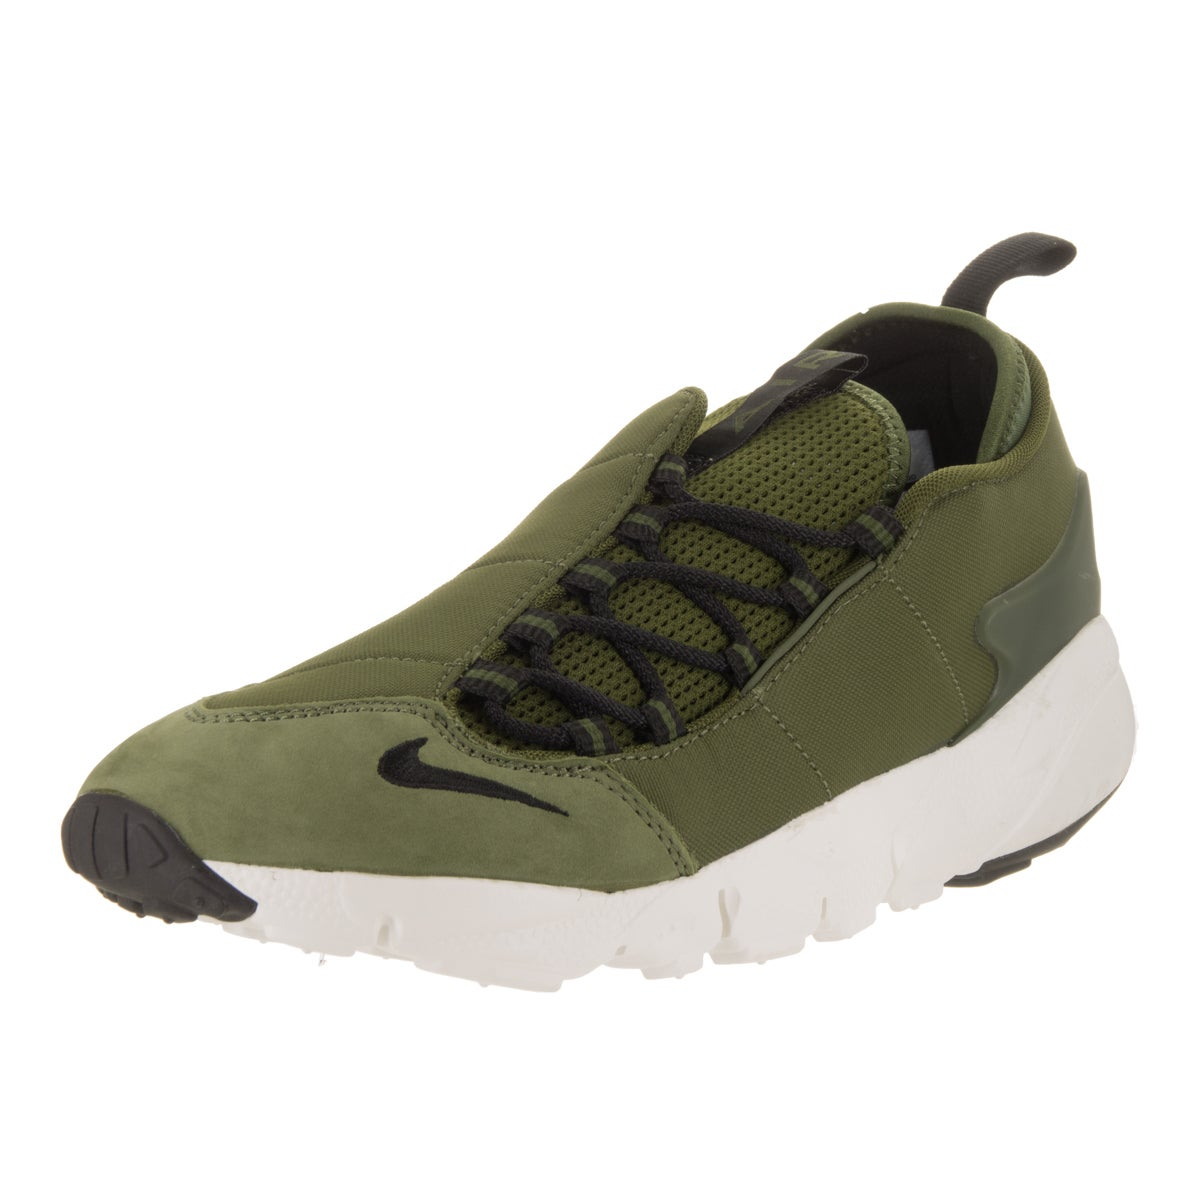 Nike Men's Air Footscape NM Training Shoes (9.5), Green